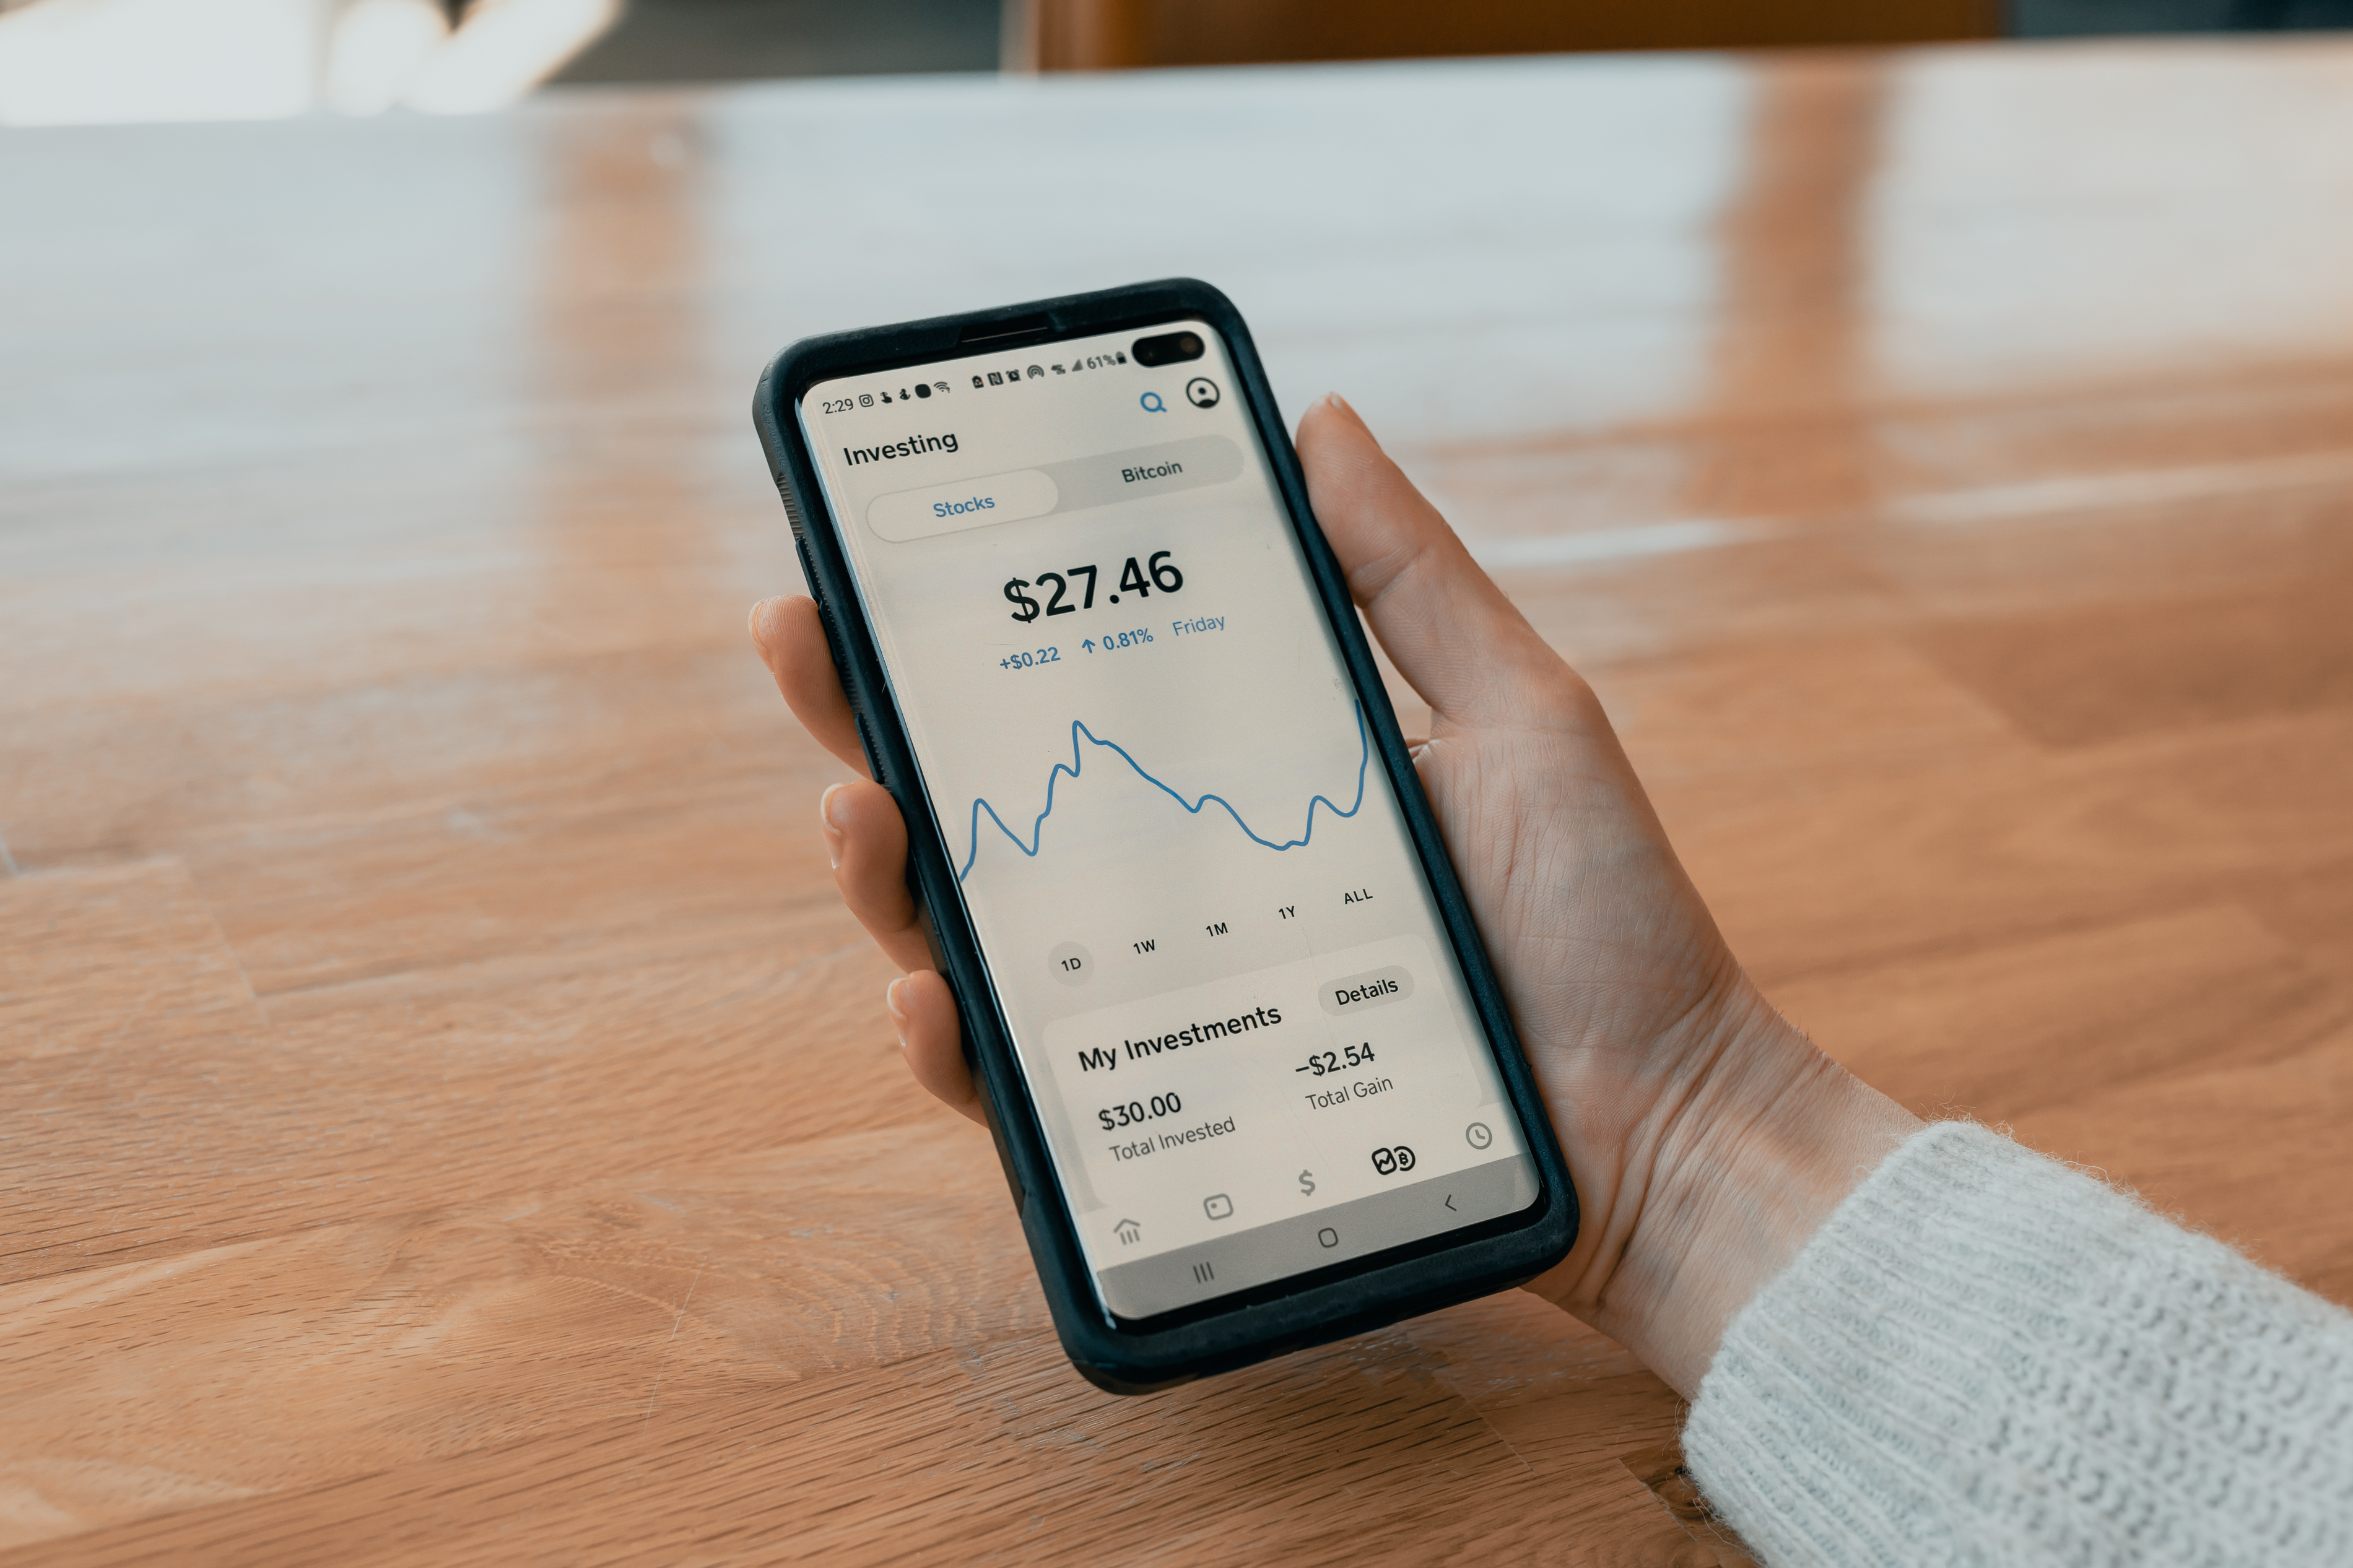 Buy stocks and bitcoin with Cash App by Square Via: techdaily.ca - #zelle #cashapp #venmo #wealthsimplecash ferwise #money